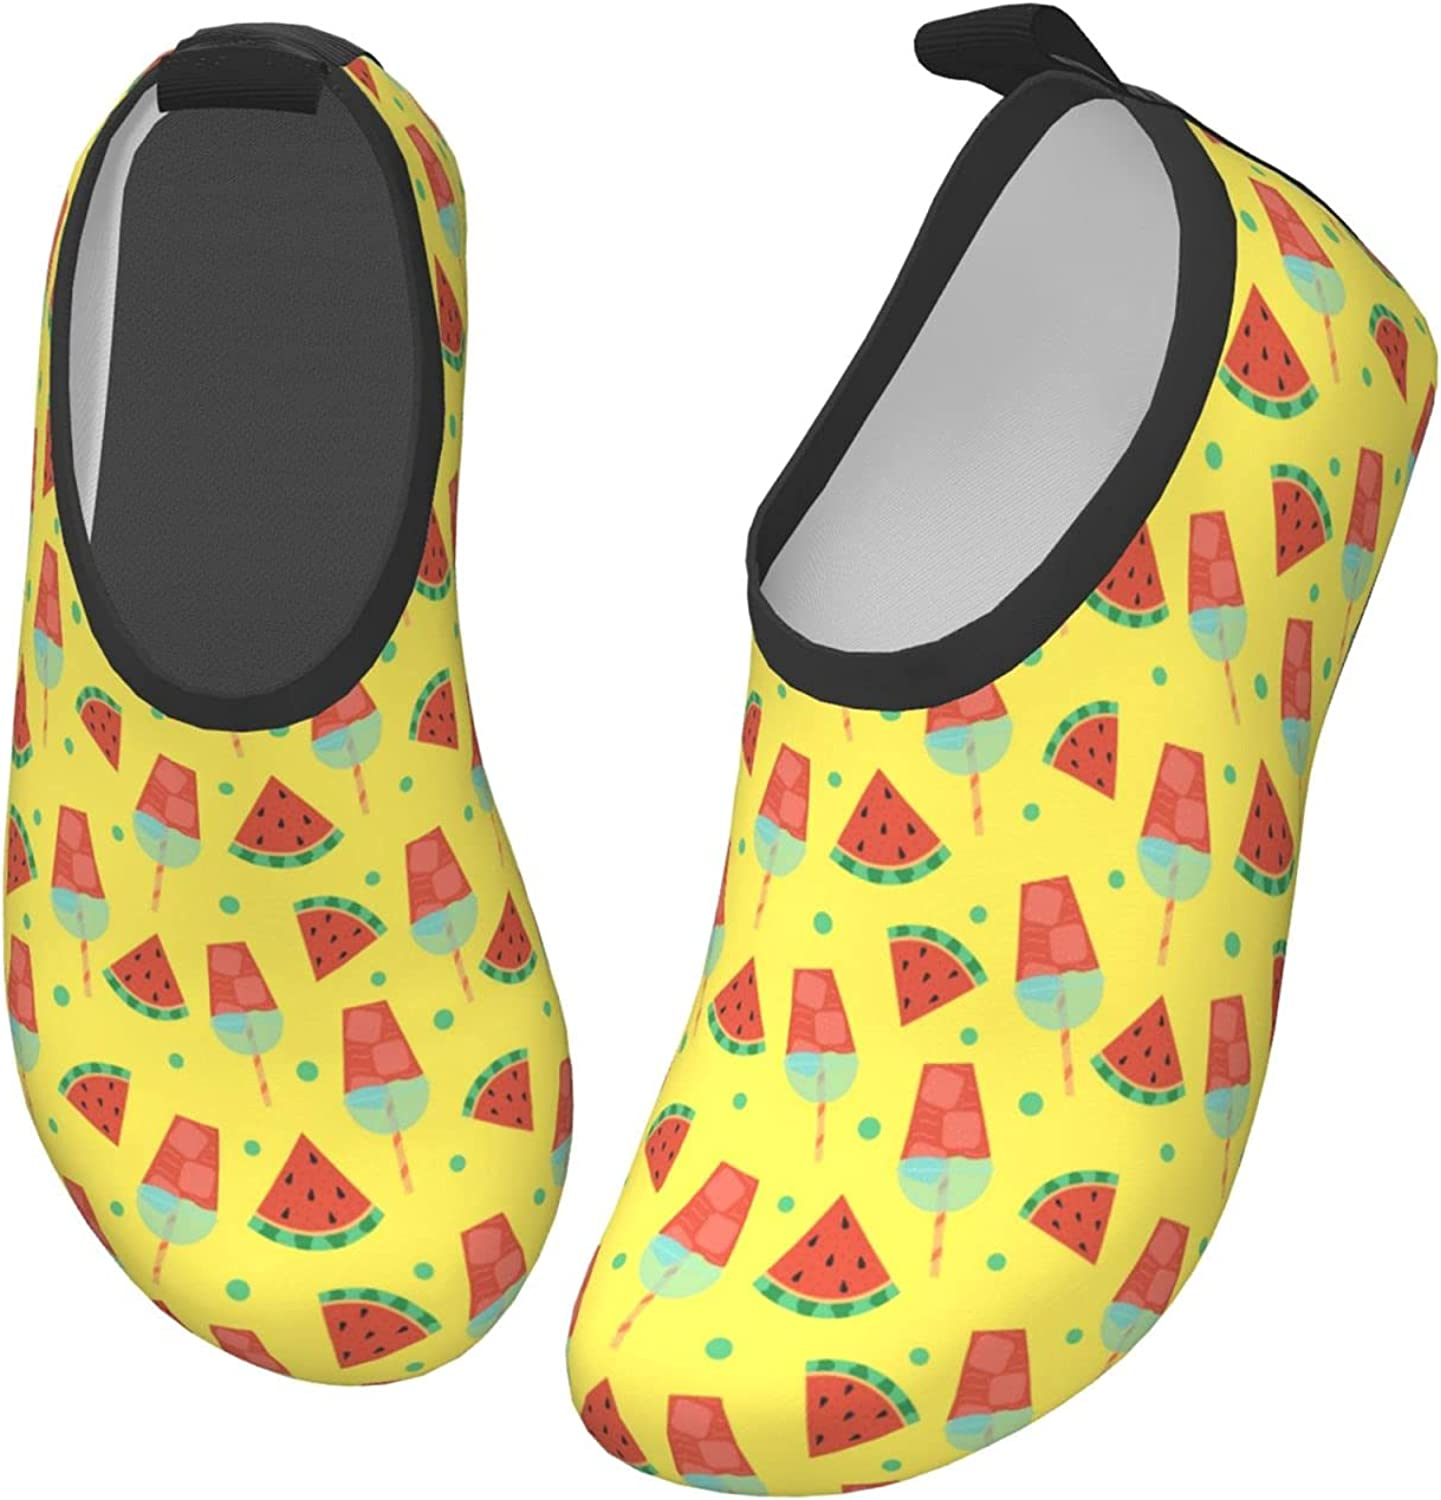 Watermelon Ice Cream Red Melon Fruit Children's Water Shoes Feel Barefoot for Swimming Beach Boating Surfing Yoga